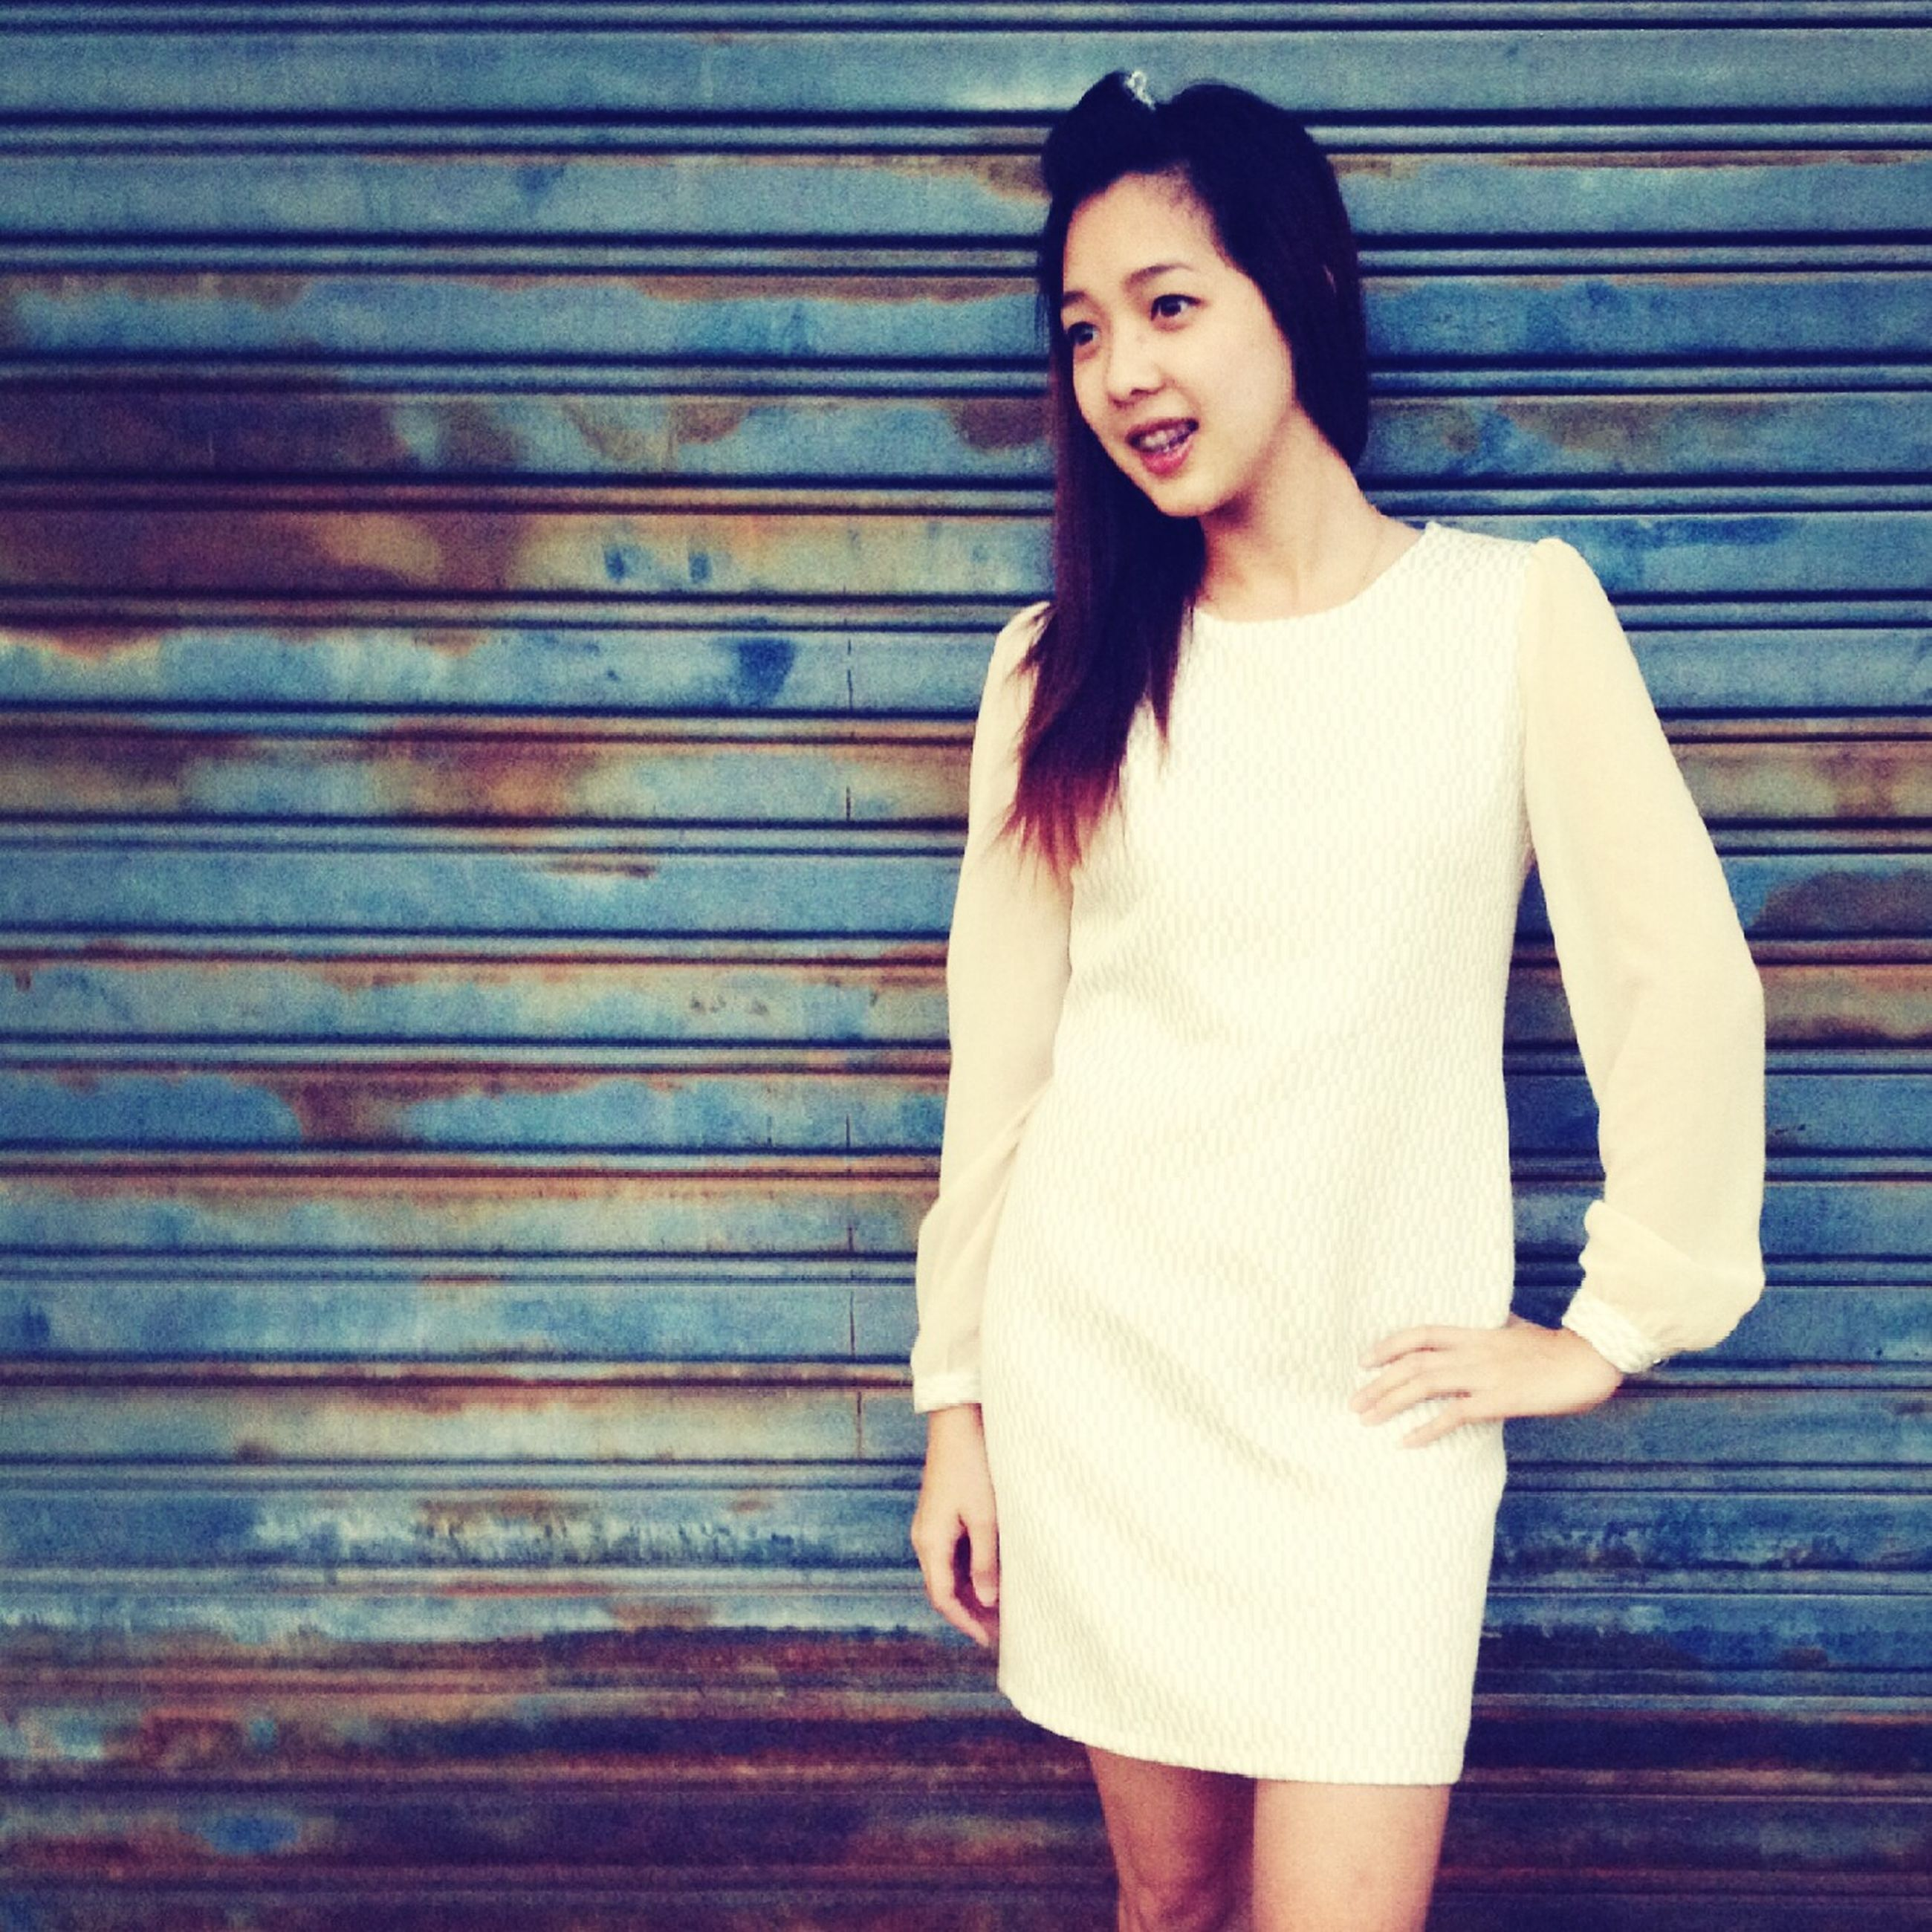 young adult, young women, front view, standing, person, casual clothing, lifestyles, long hair, portrait, looking at camera, three quarter length, leisure activity, fashion, dress, indoors, beauty, wall - building feature